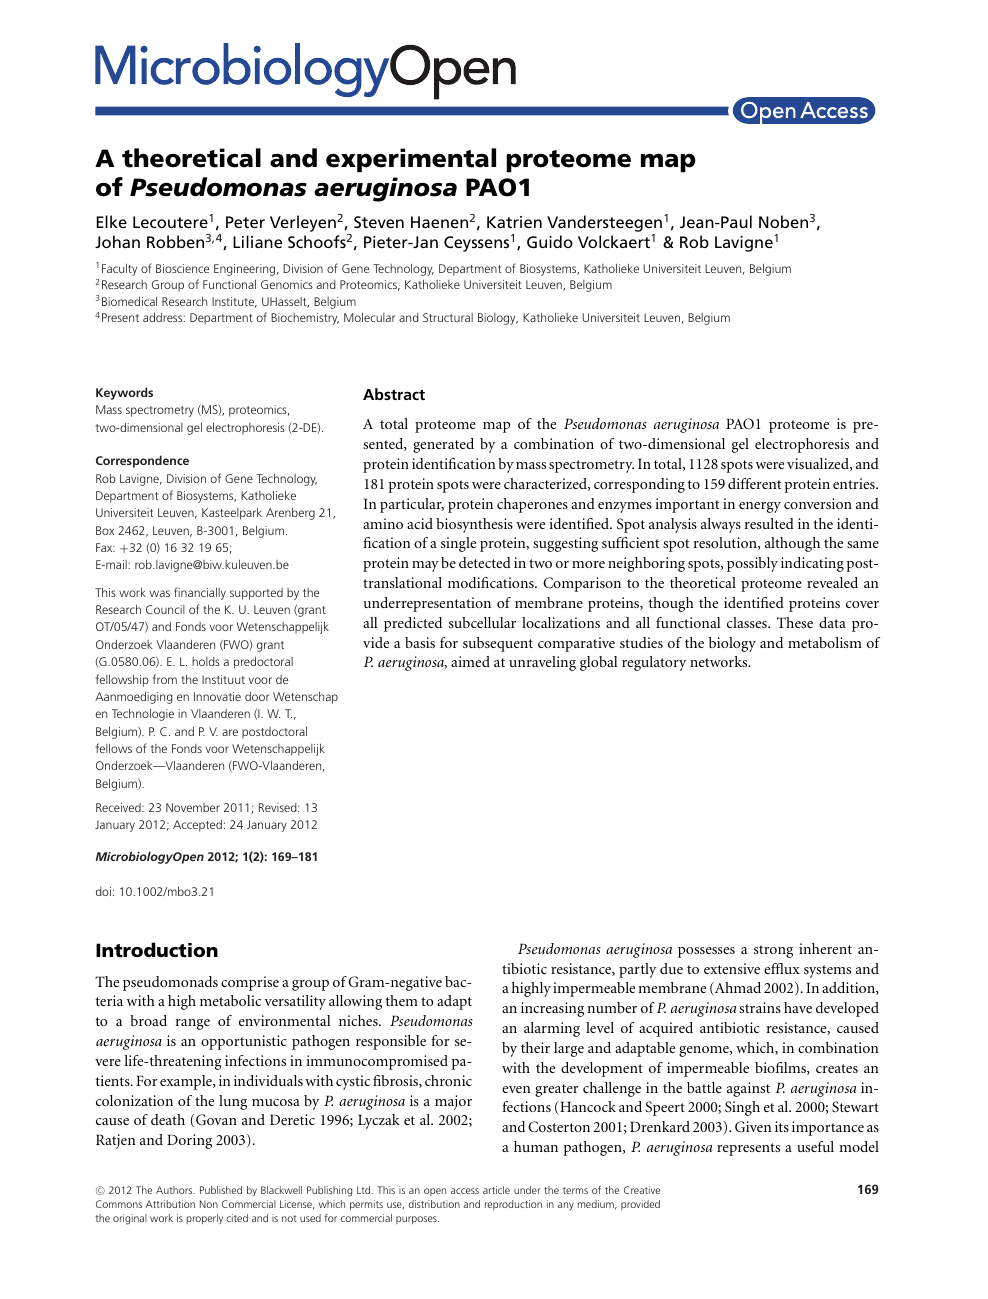 A theoretical and experimental proteome map of Pseudomonas